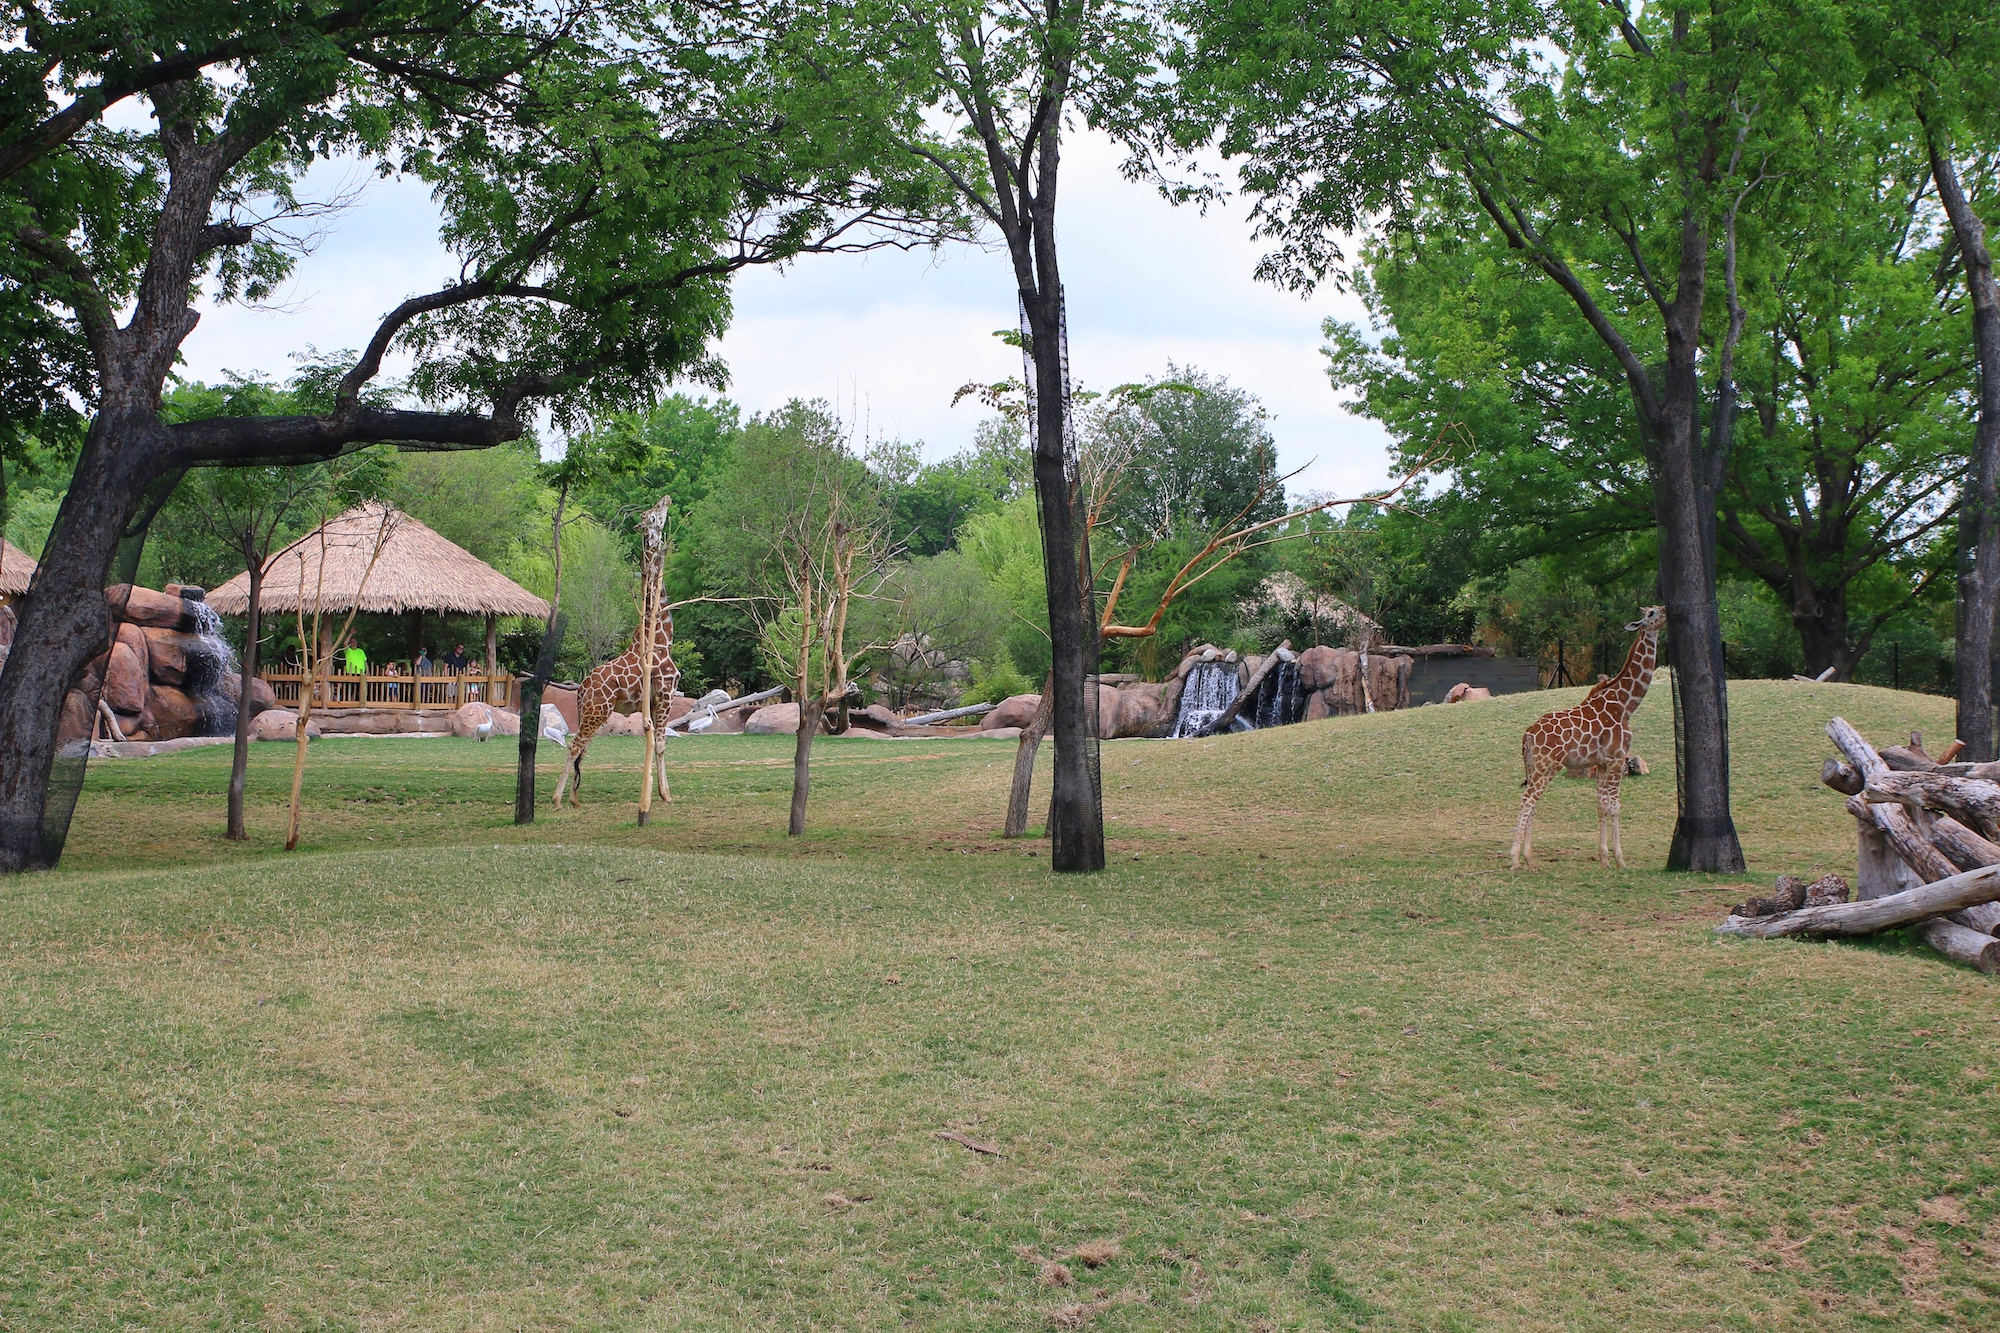 see the giraffes at Fort Worth zoo